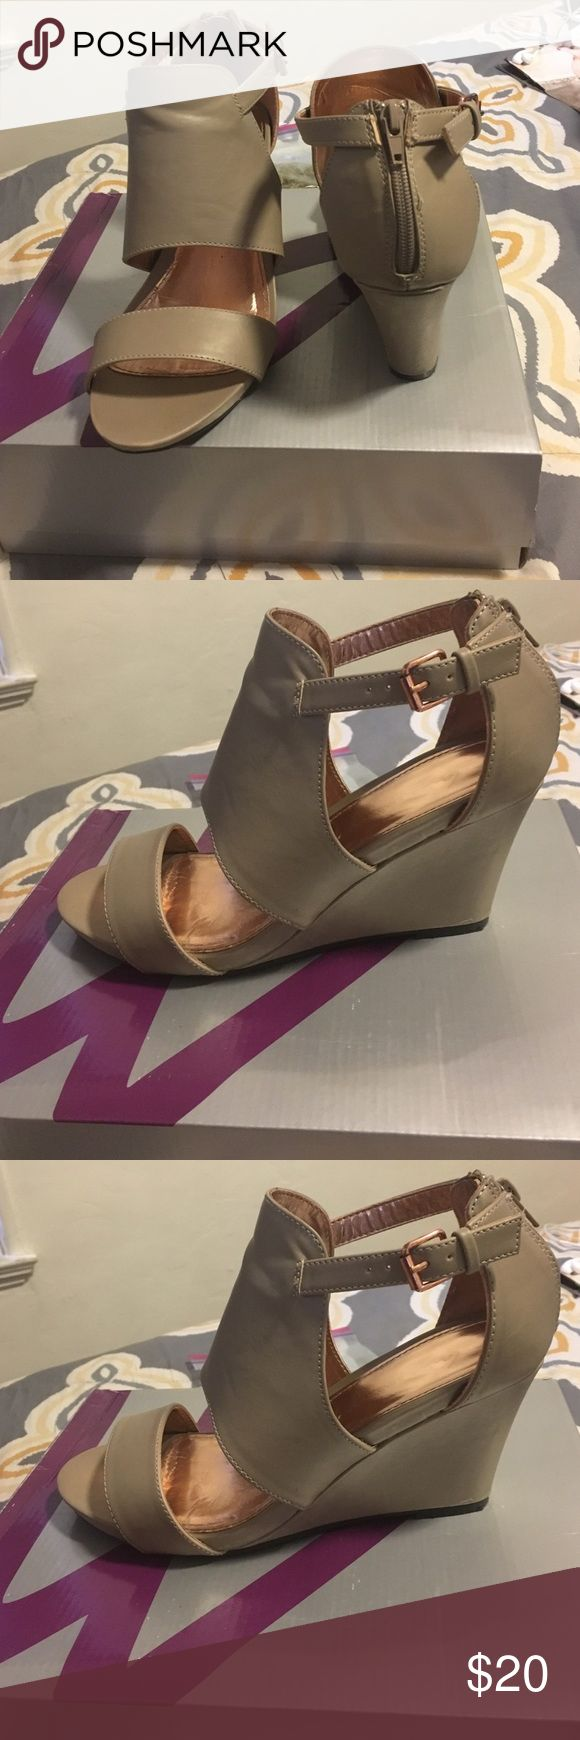 Lane Bryant Nude Band Wedge Sandal Size 10w Great pair of women's sandals by Lane Bryant. These shoes have an ankle strap as well as a zip up the back. These have been worn about 3x. Minimal signs of wear! Size 10w color: Nude. Comes w/box Lane Bryant Shoes Wedges